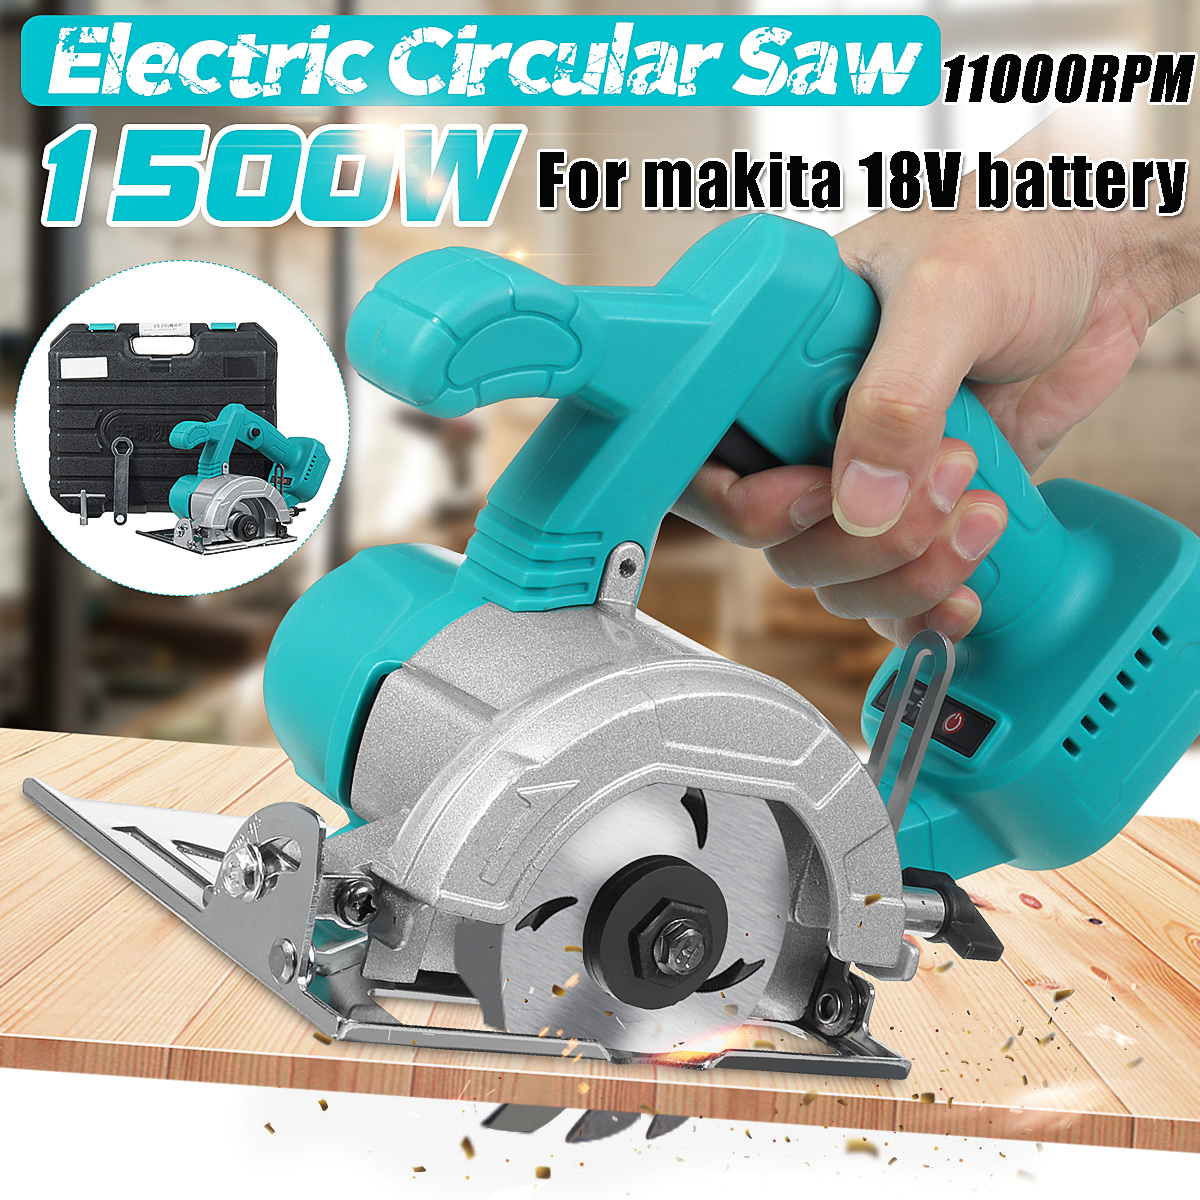 For Makita 18V Battery 1500W Electric Circular Saw Handle Power Tools Dust Passage Multifunction Cutting Machine